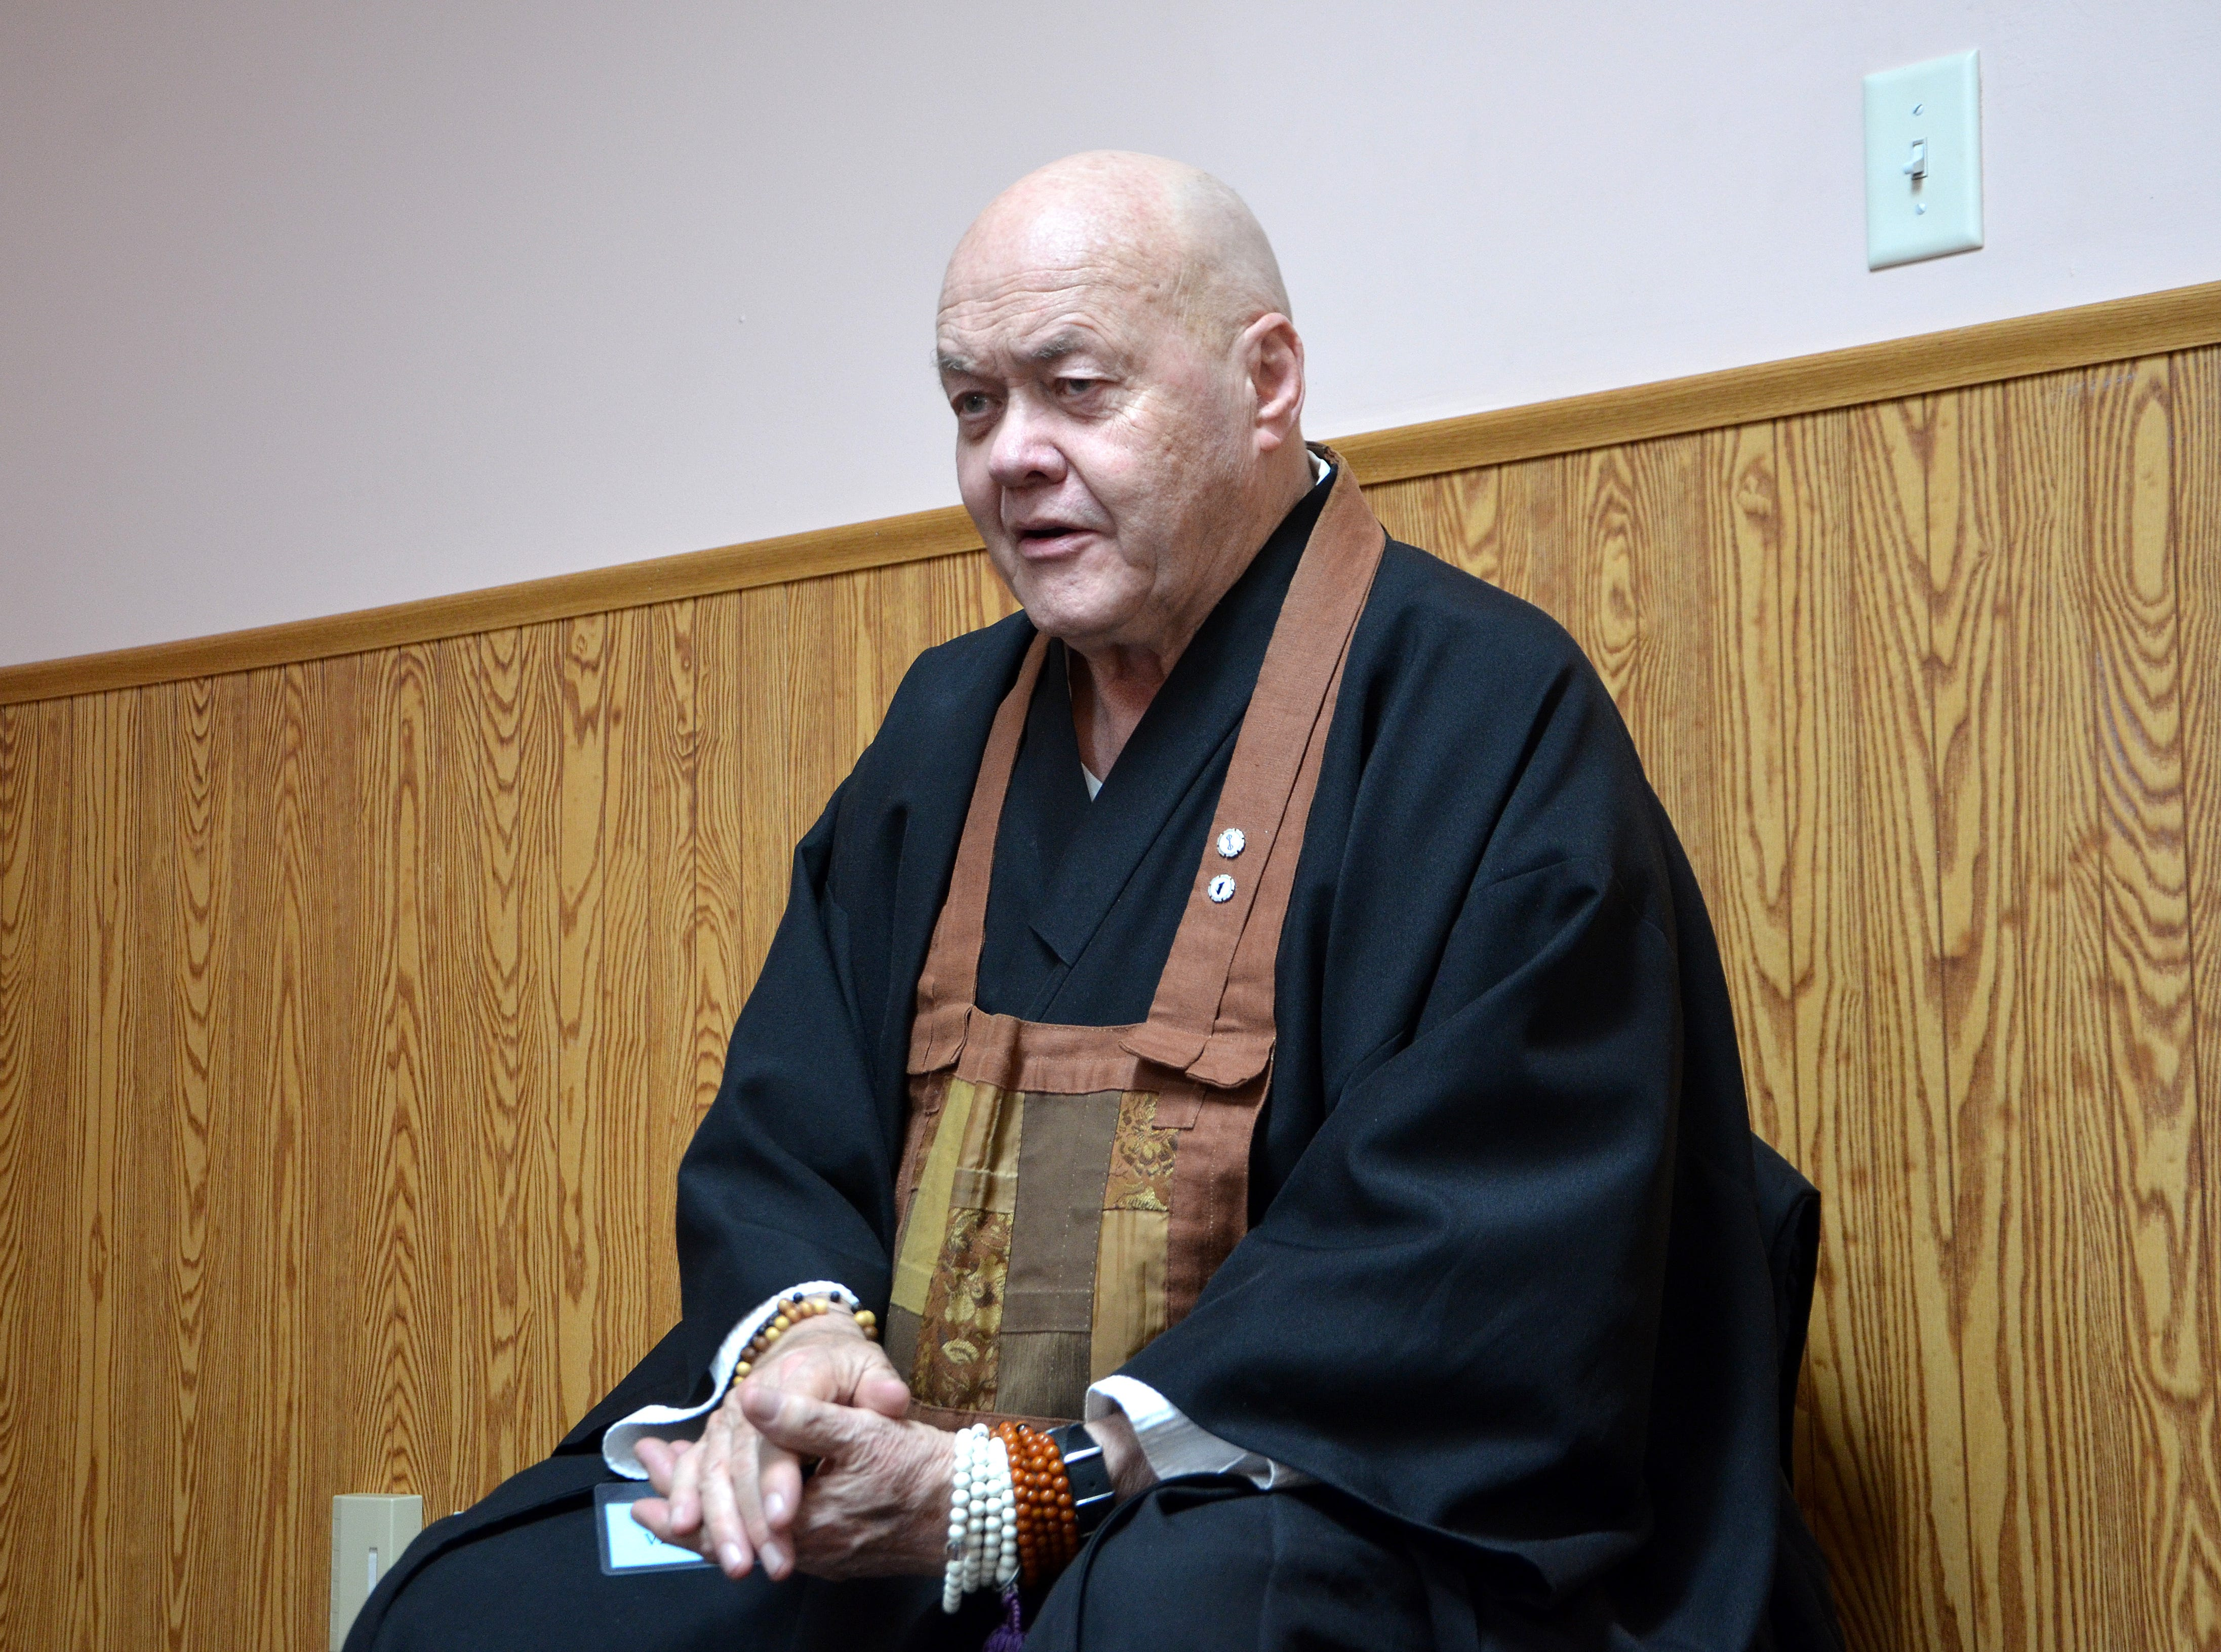 Sokuzan, the abbot of SokukoJi Buddhist Temple Monastery, and his students teach meditation classes at A Forever Recovery and at various Michigan Department of Corrections facilities around the state.